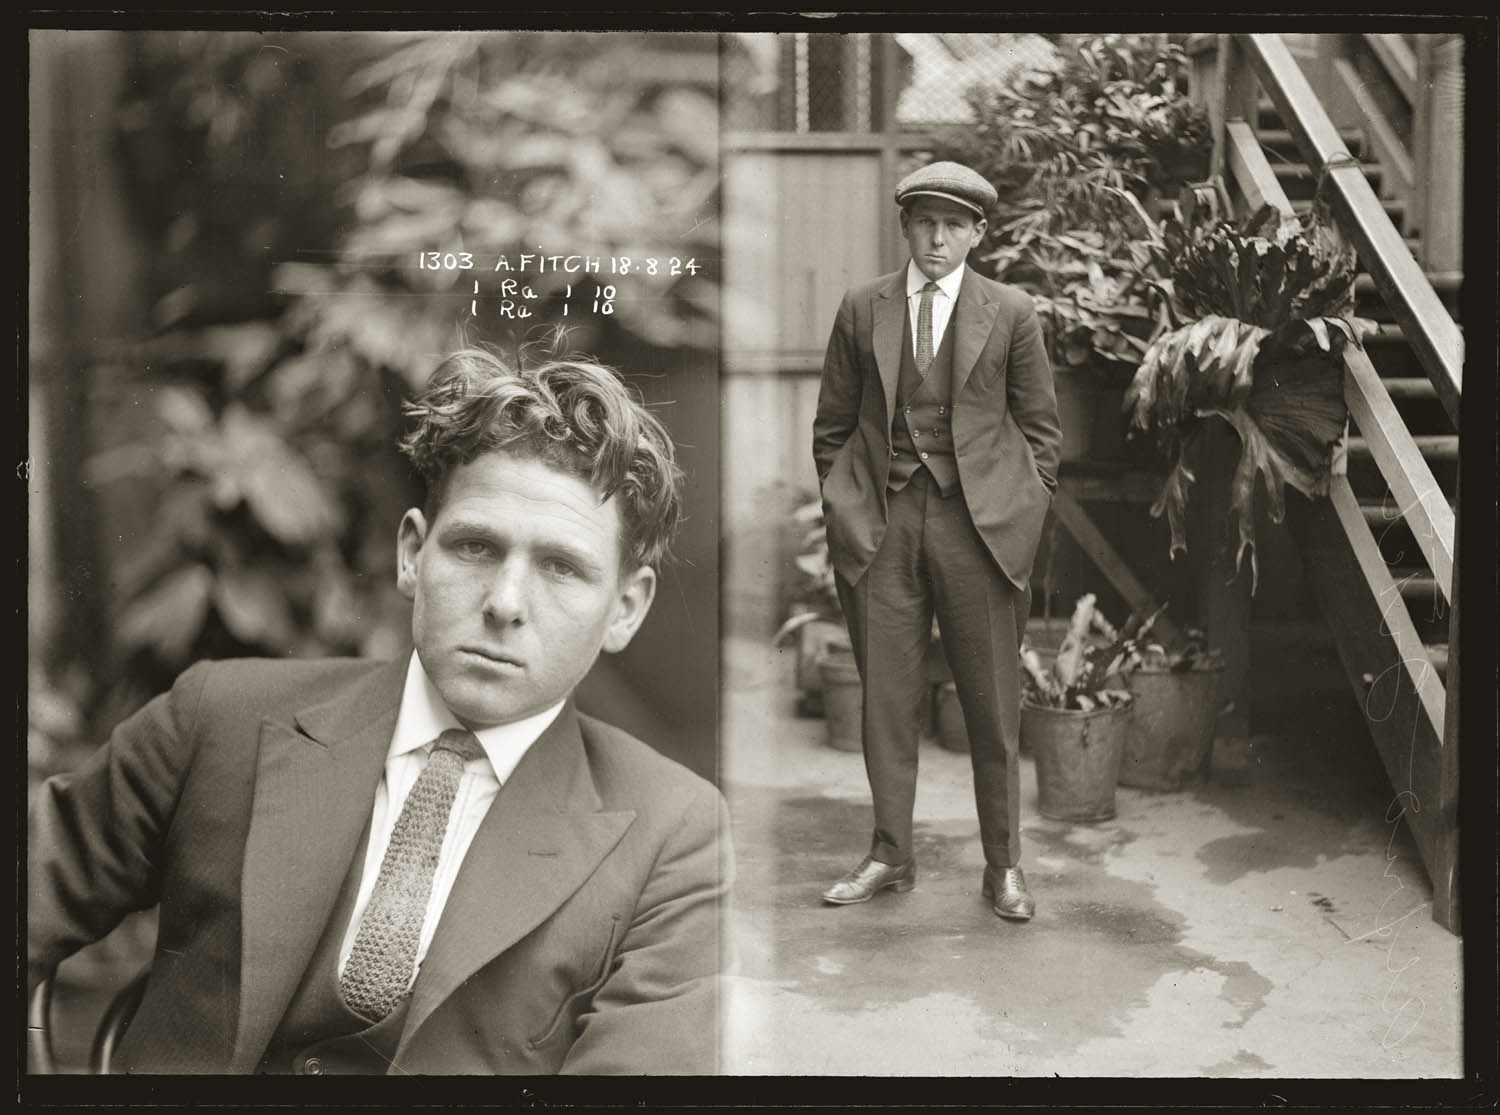 Mug shot Alfred Fitch, 18 August 1924, location unknown, but possibly Darlinghurst Police Station.